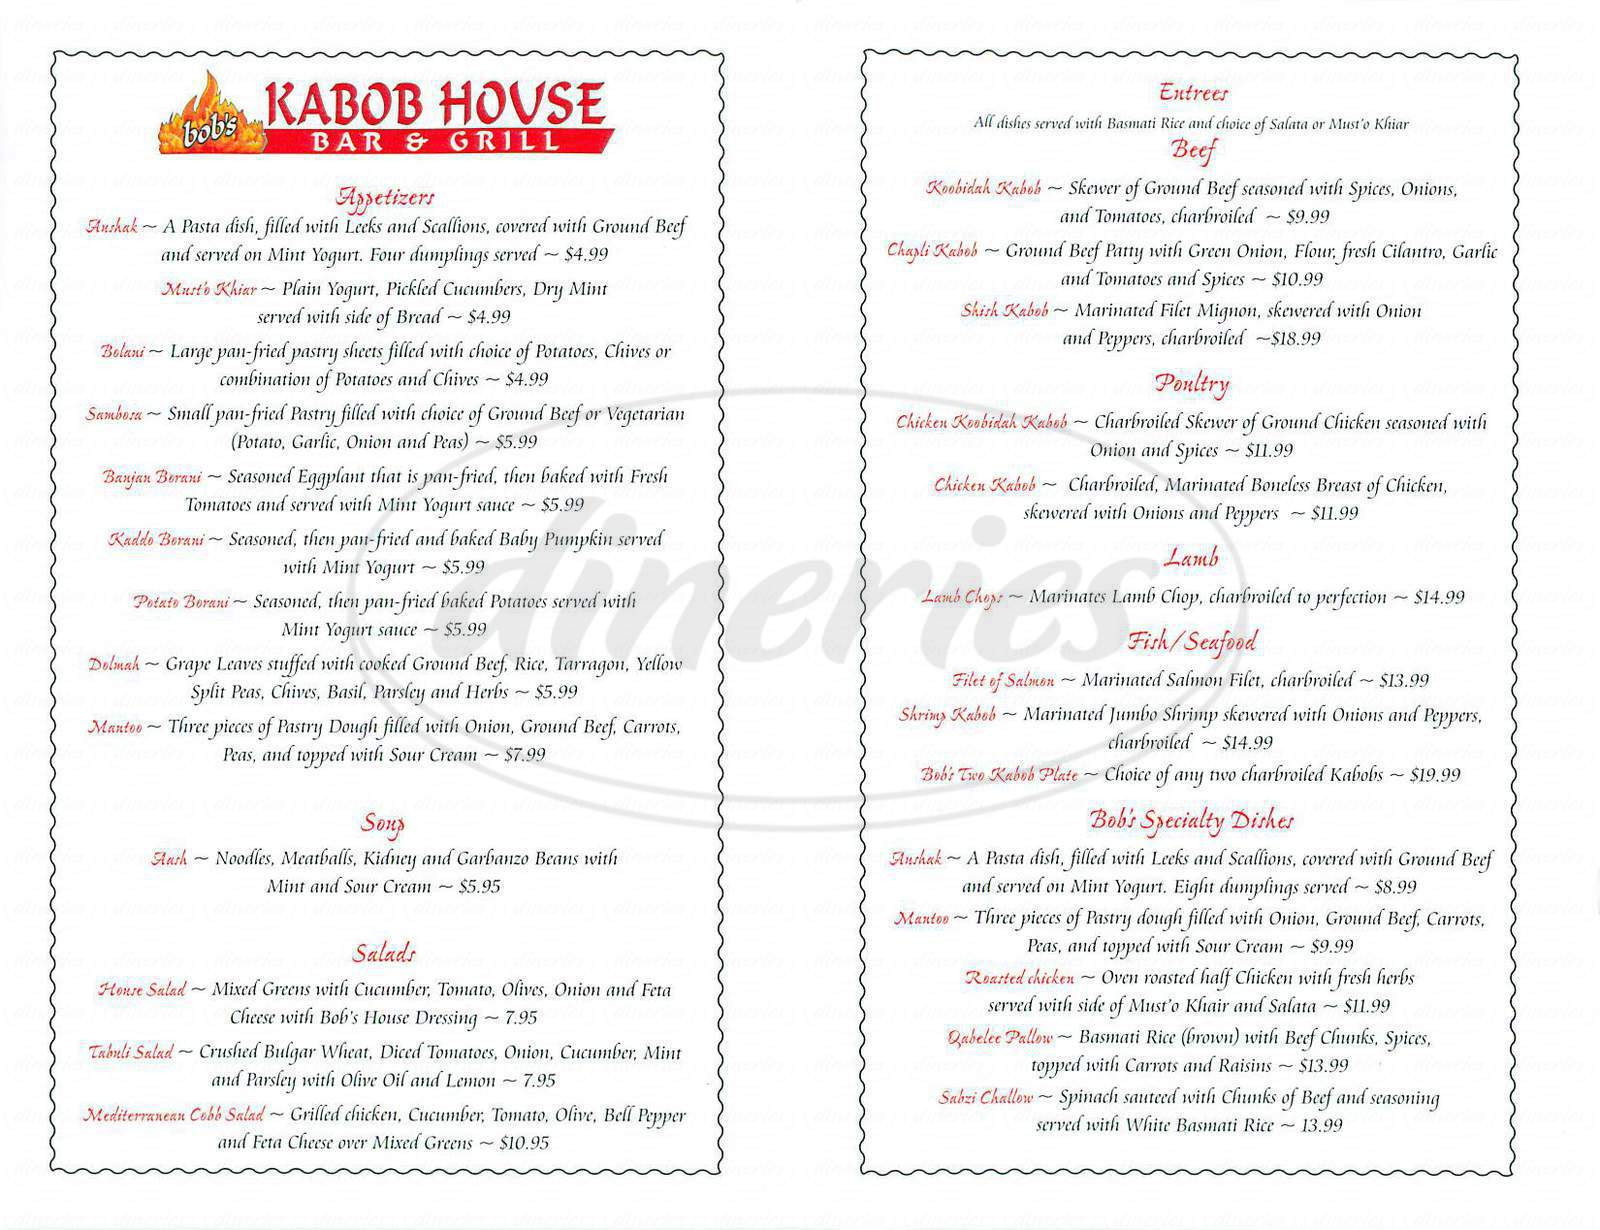 menu for Bob's Kabob House